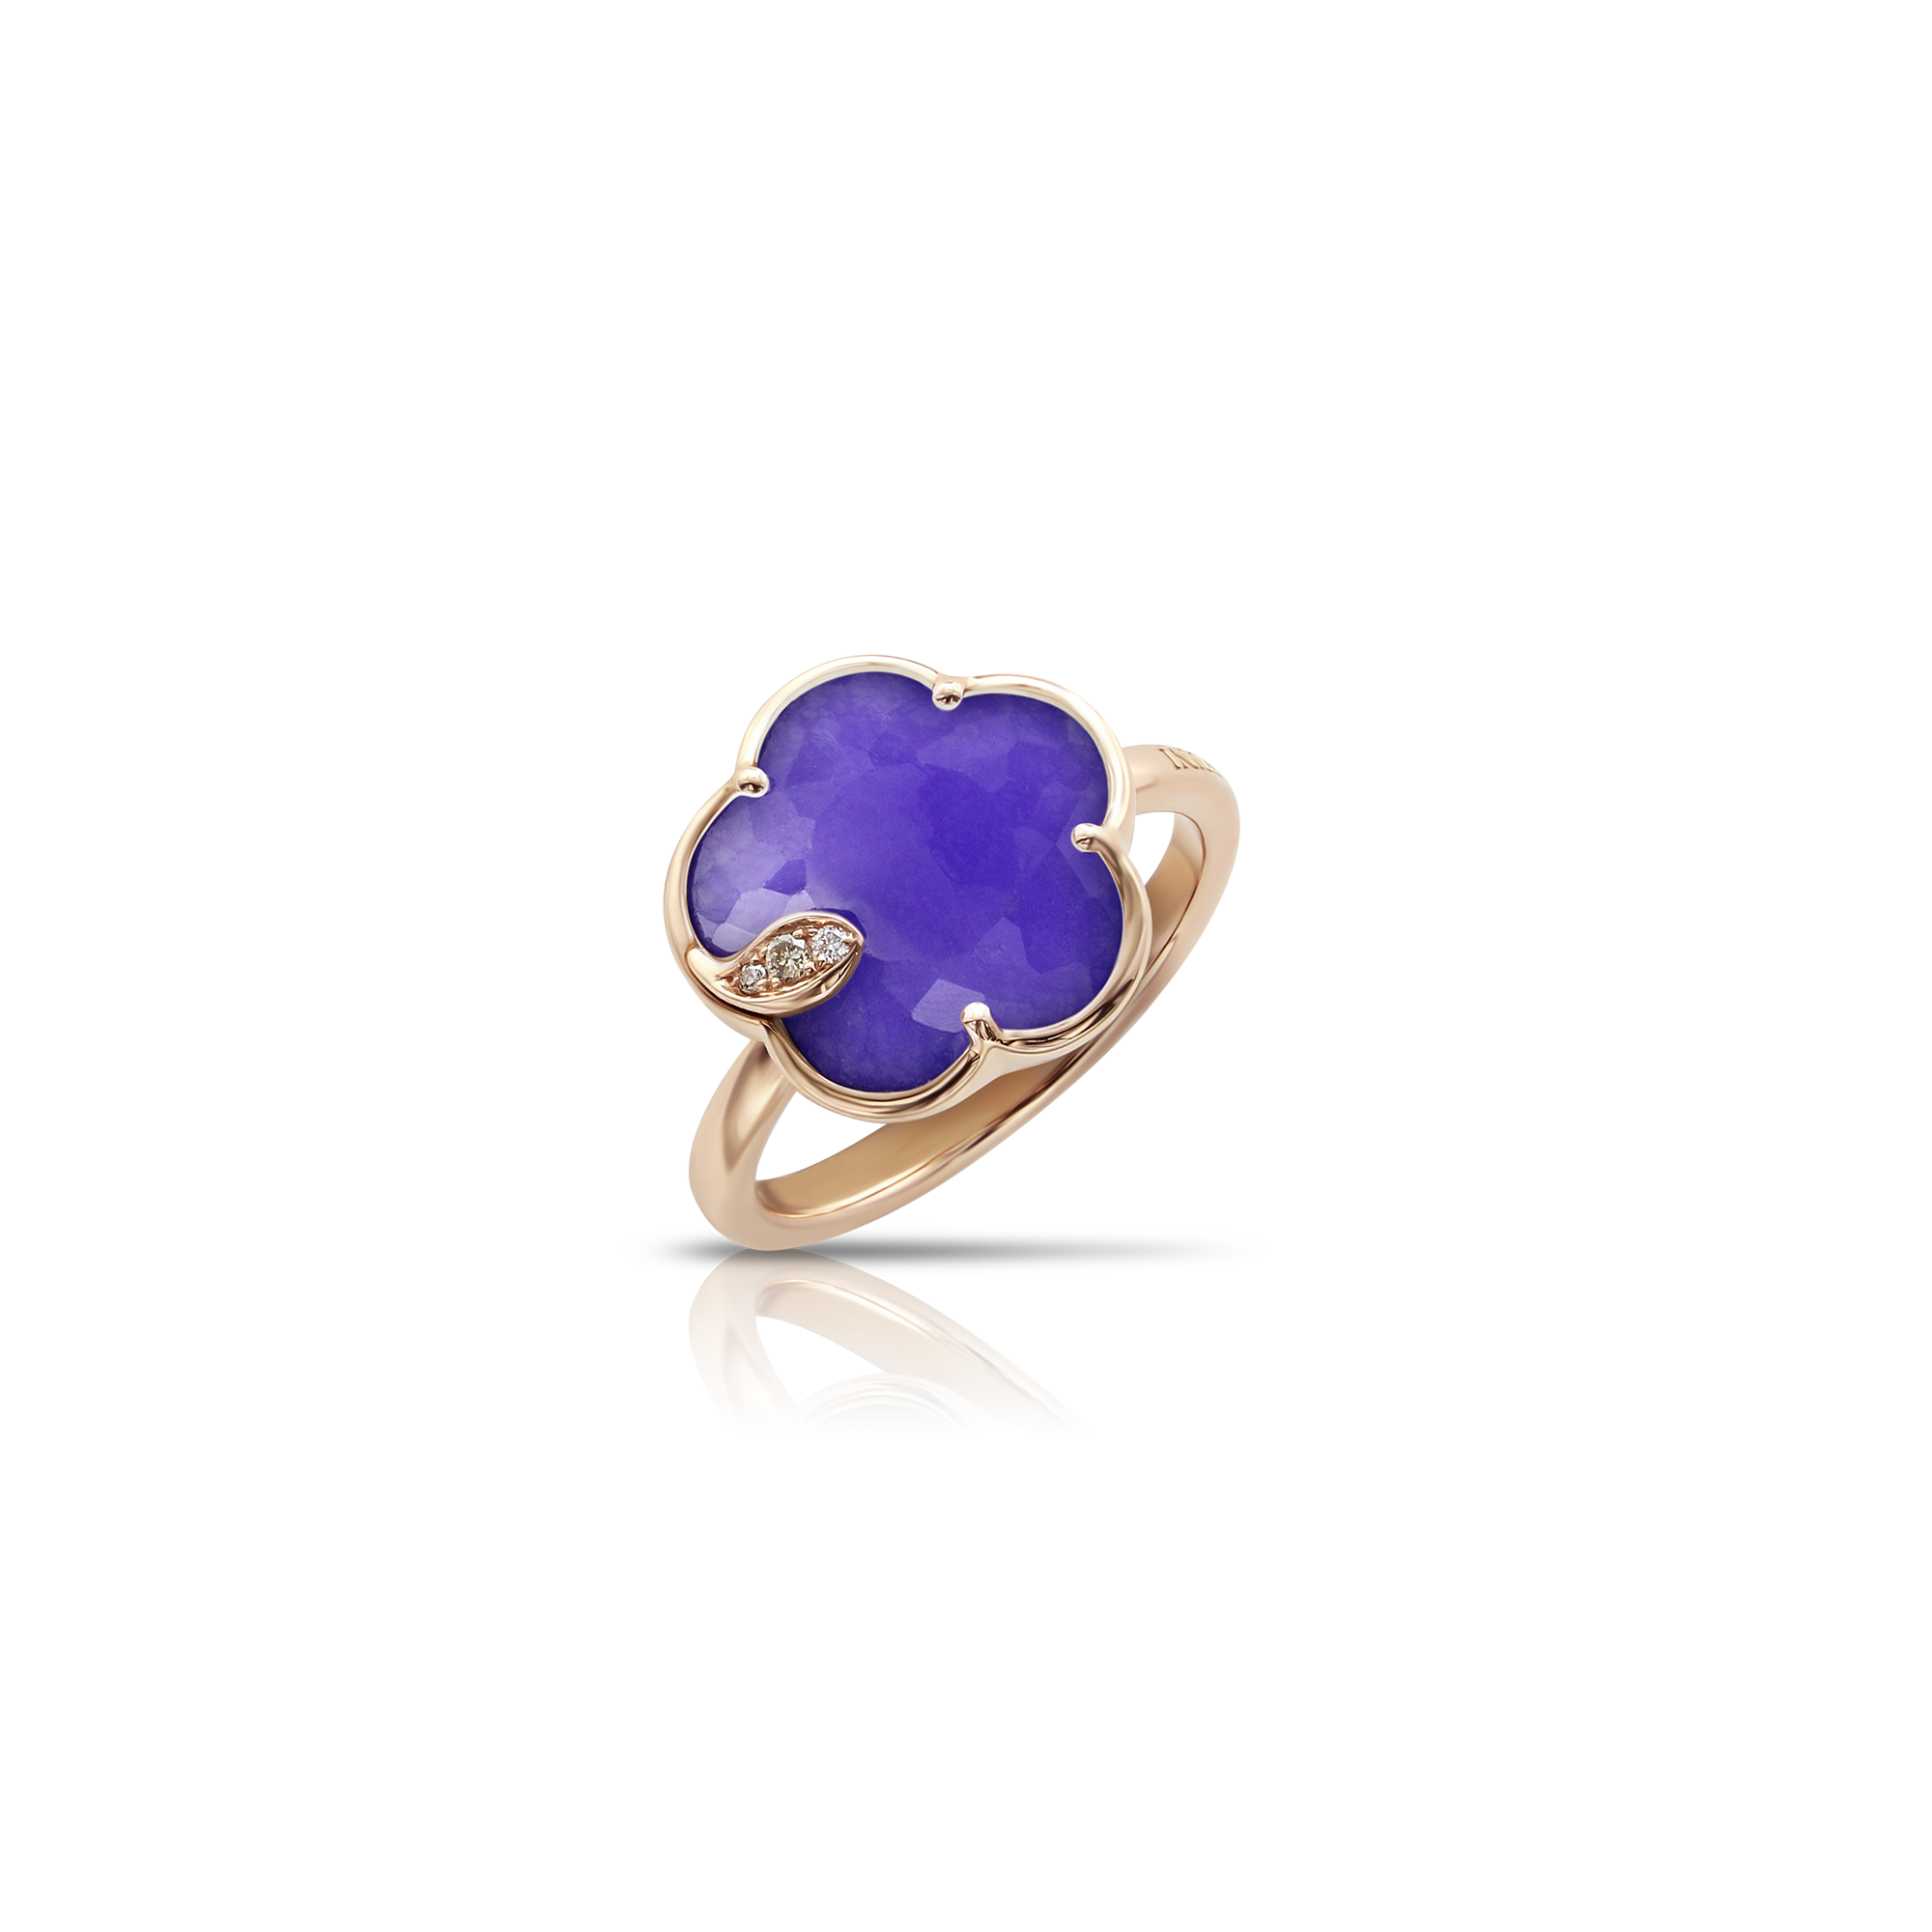 18k Rose Gold Petit Joli Ring with Violet Quartz, White and Champagne Diamonds